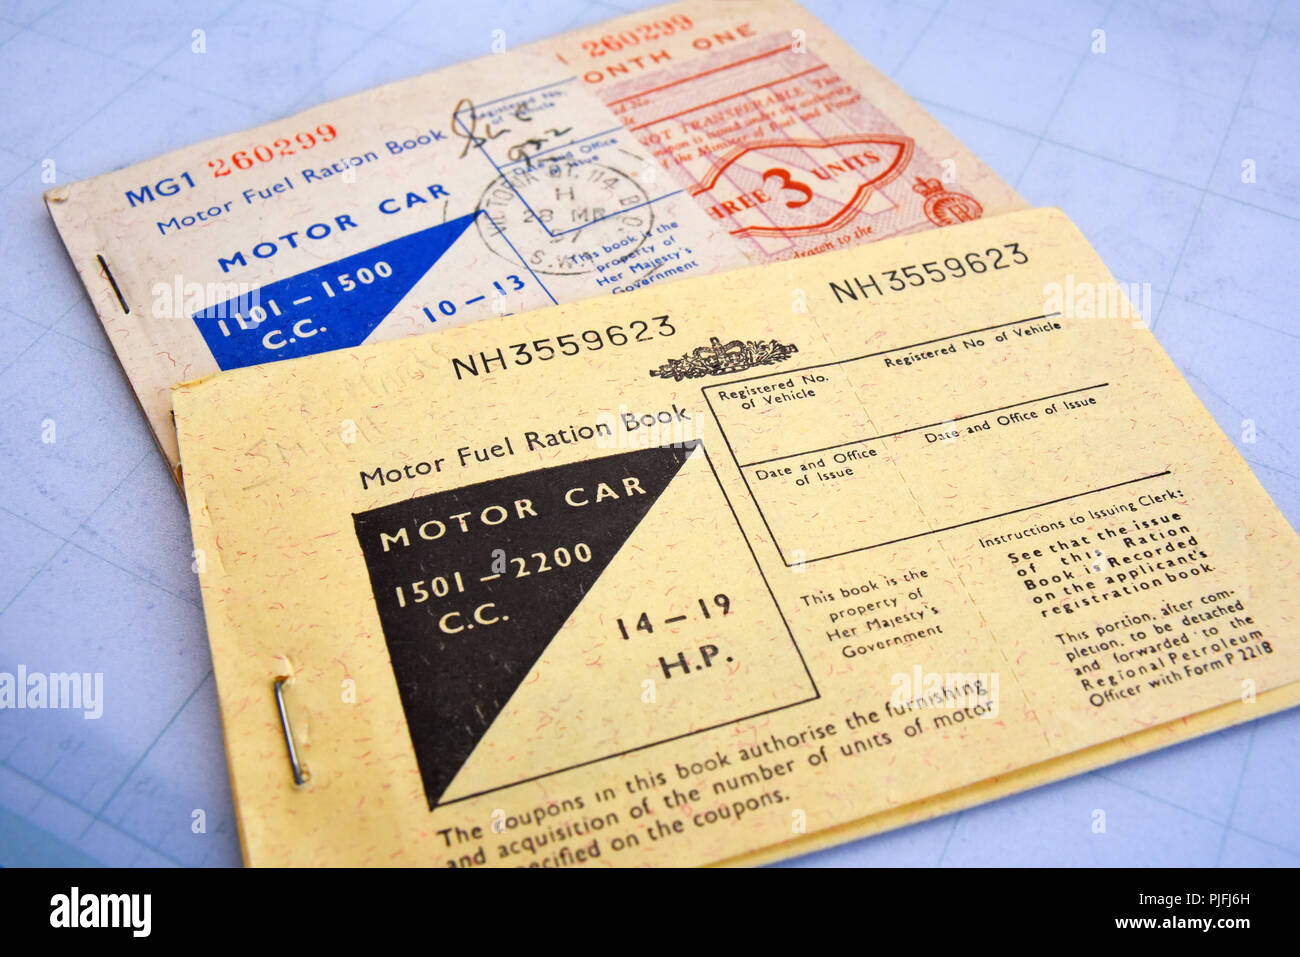 Motor fuel ration book. Petrol rationing. Fuel rations. Coupons for the purchase of motor car fuel, petrol, during post war rationing. Austerity Stock Photo